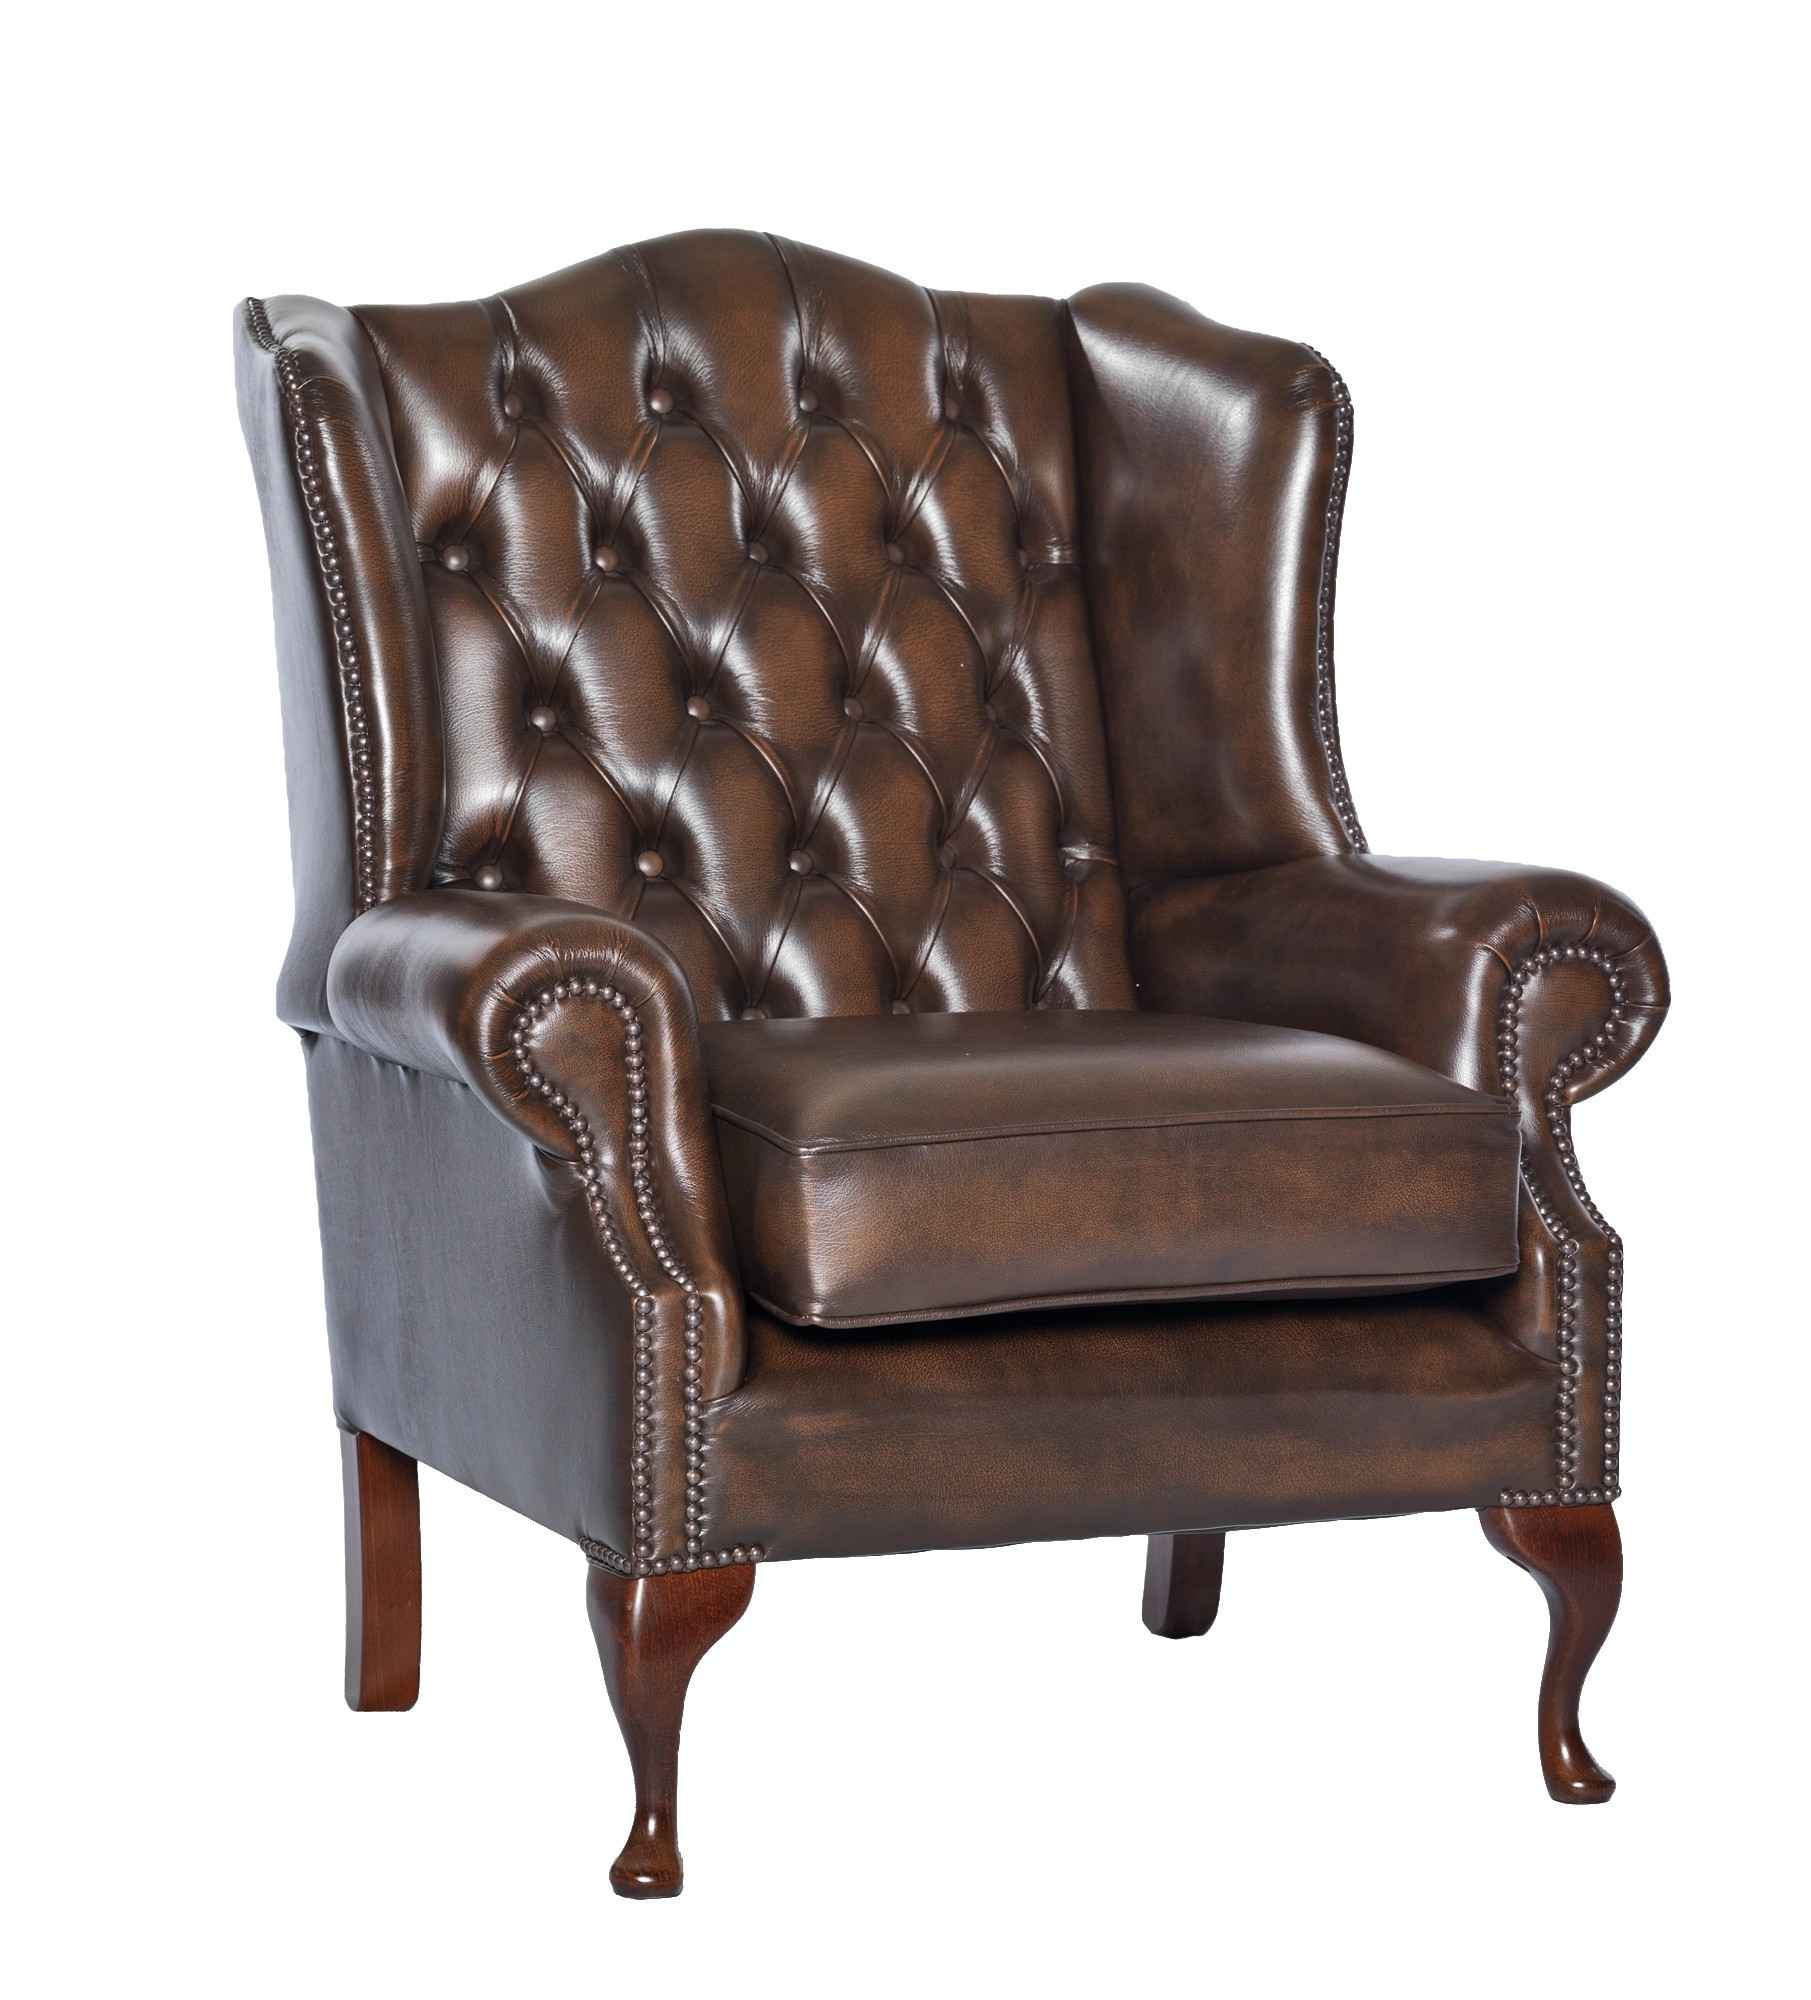 Queen Anne Leather Chesterfield Sofa Or Chair Leather Sofas And Intended For Chesterfield Sofa And Chairs (Image 10 of 15)